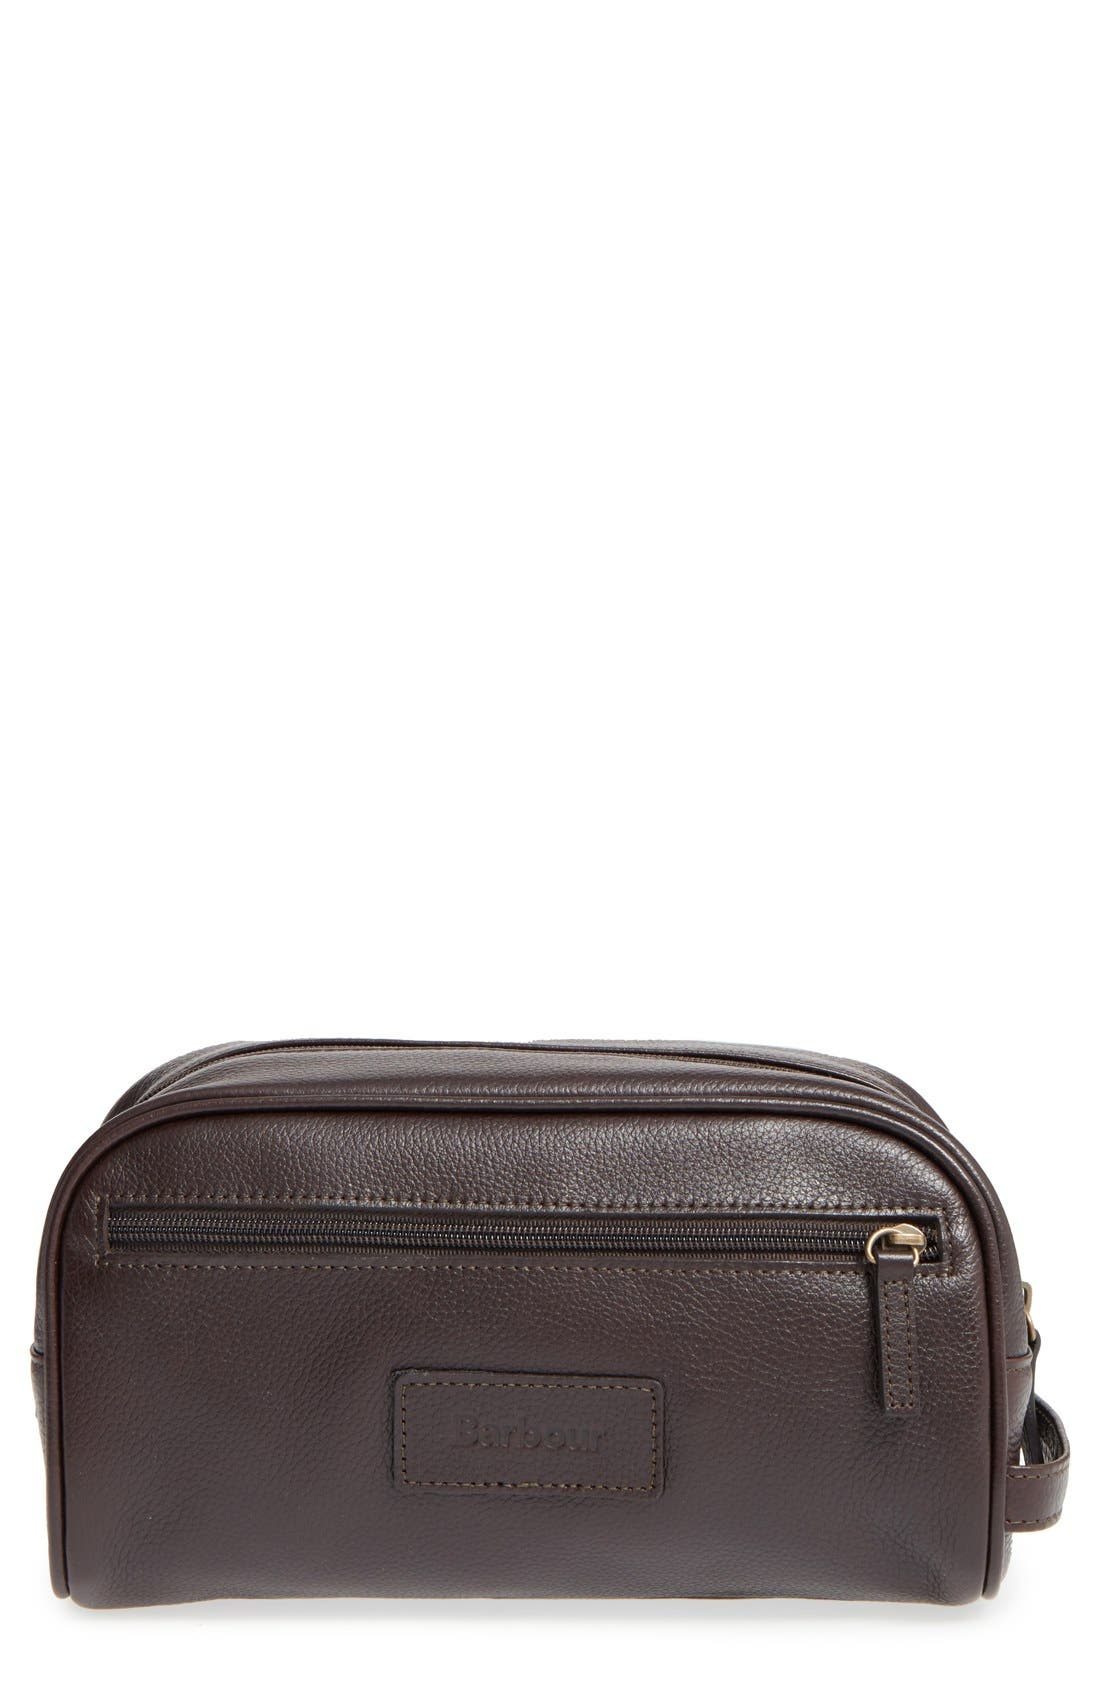 Leather Travel Kit,                             Main thumbnail 1, color,                             DARK BROWN